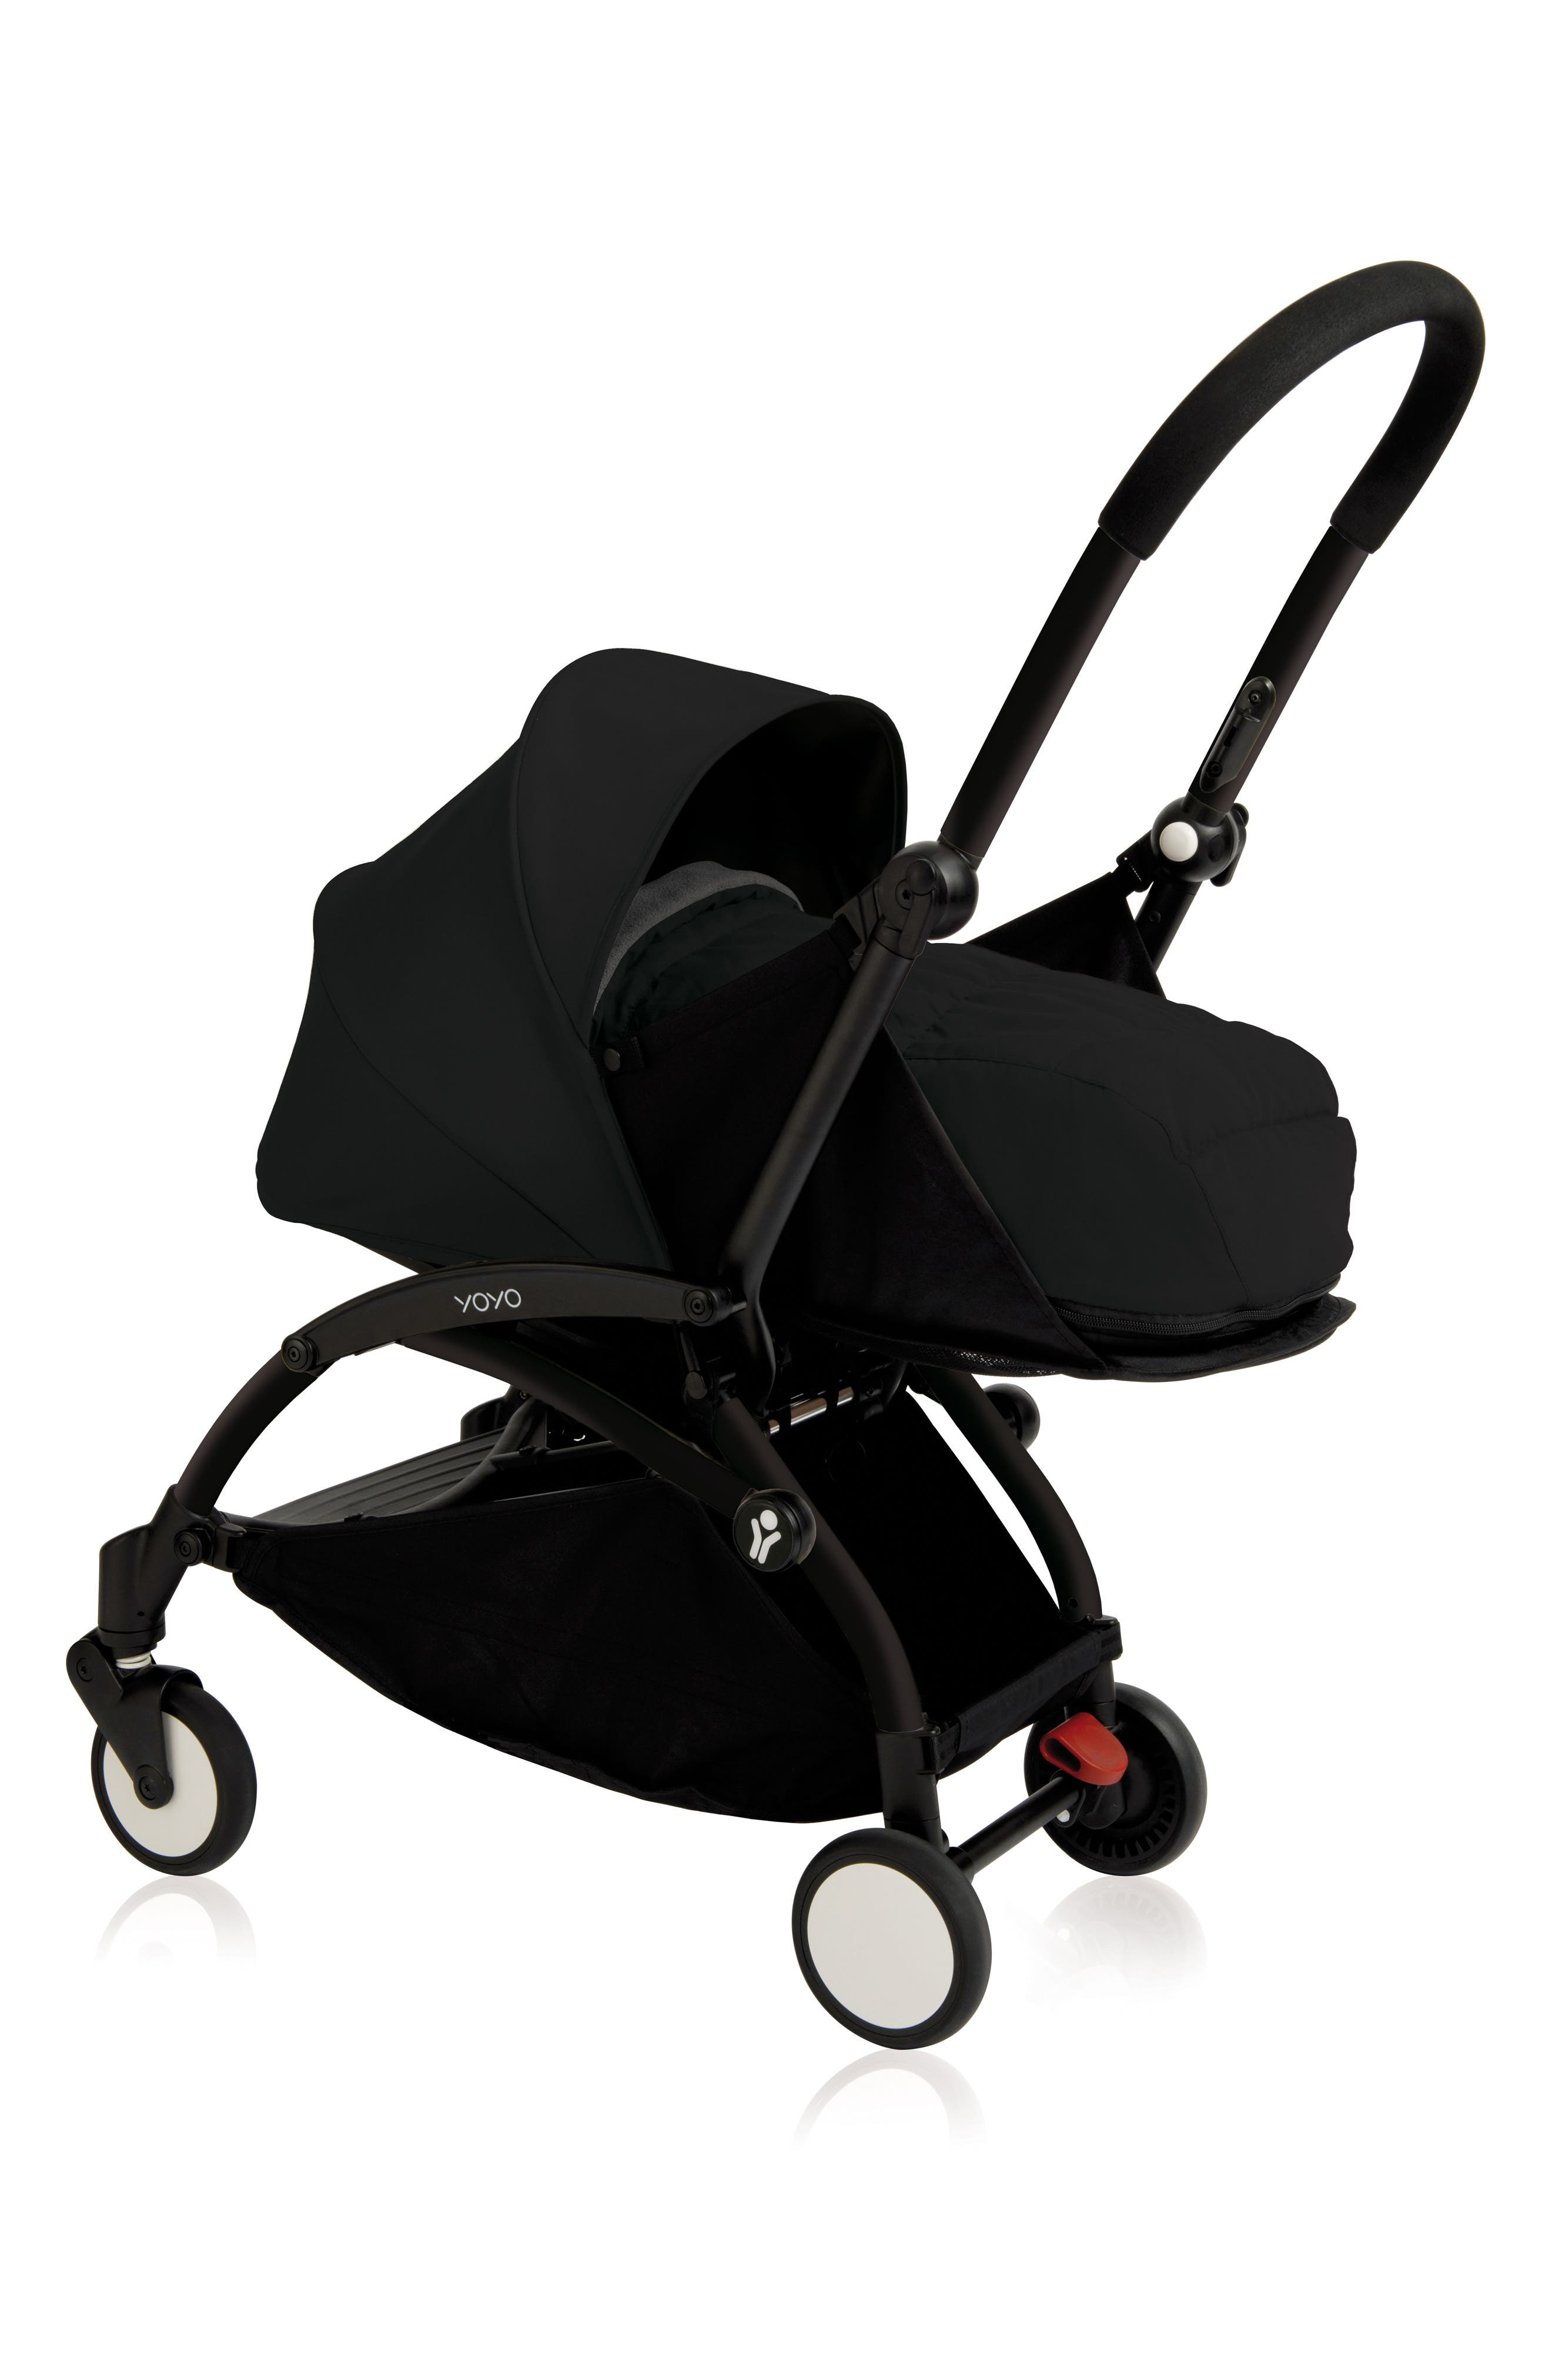 BABYZEN YOYO+ Complete Stroller with Newborn Color Pack Fabric Set,                             Main thumbnail 1, color,                             BLACK